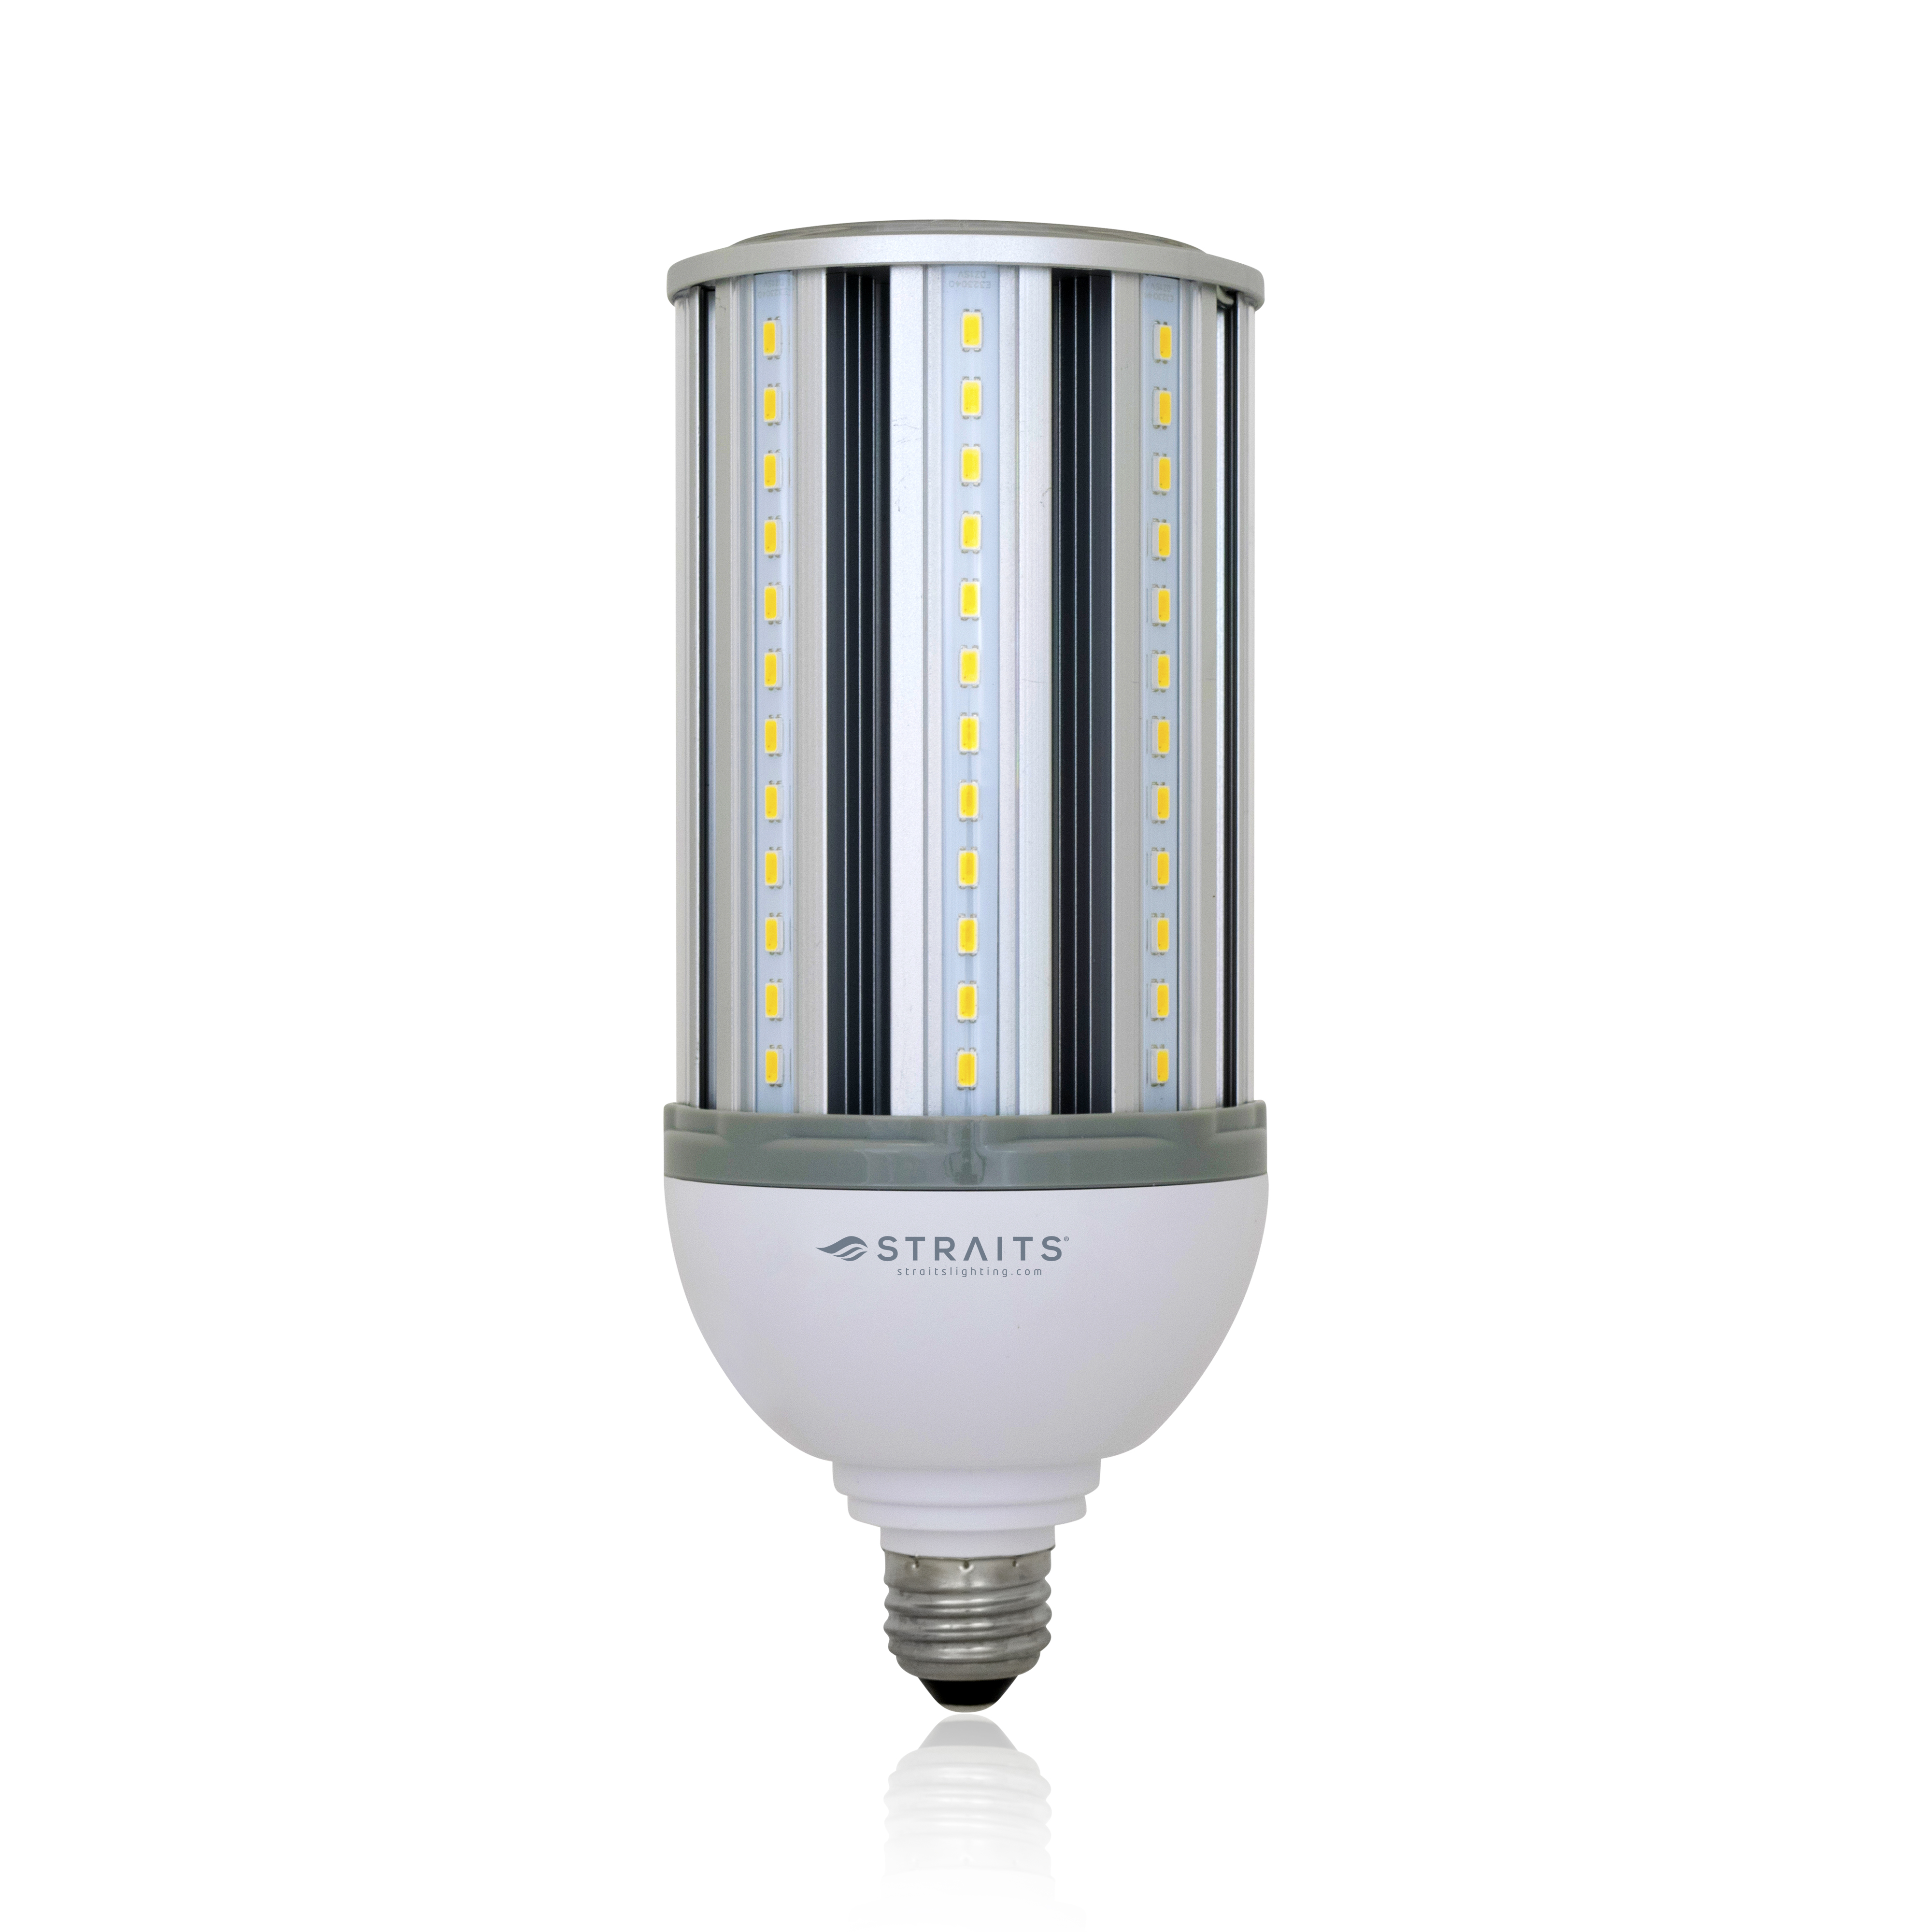 Beam 360 LED Corn Lamp - 15020039